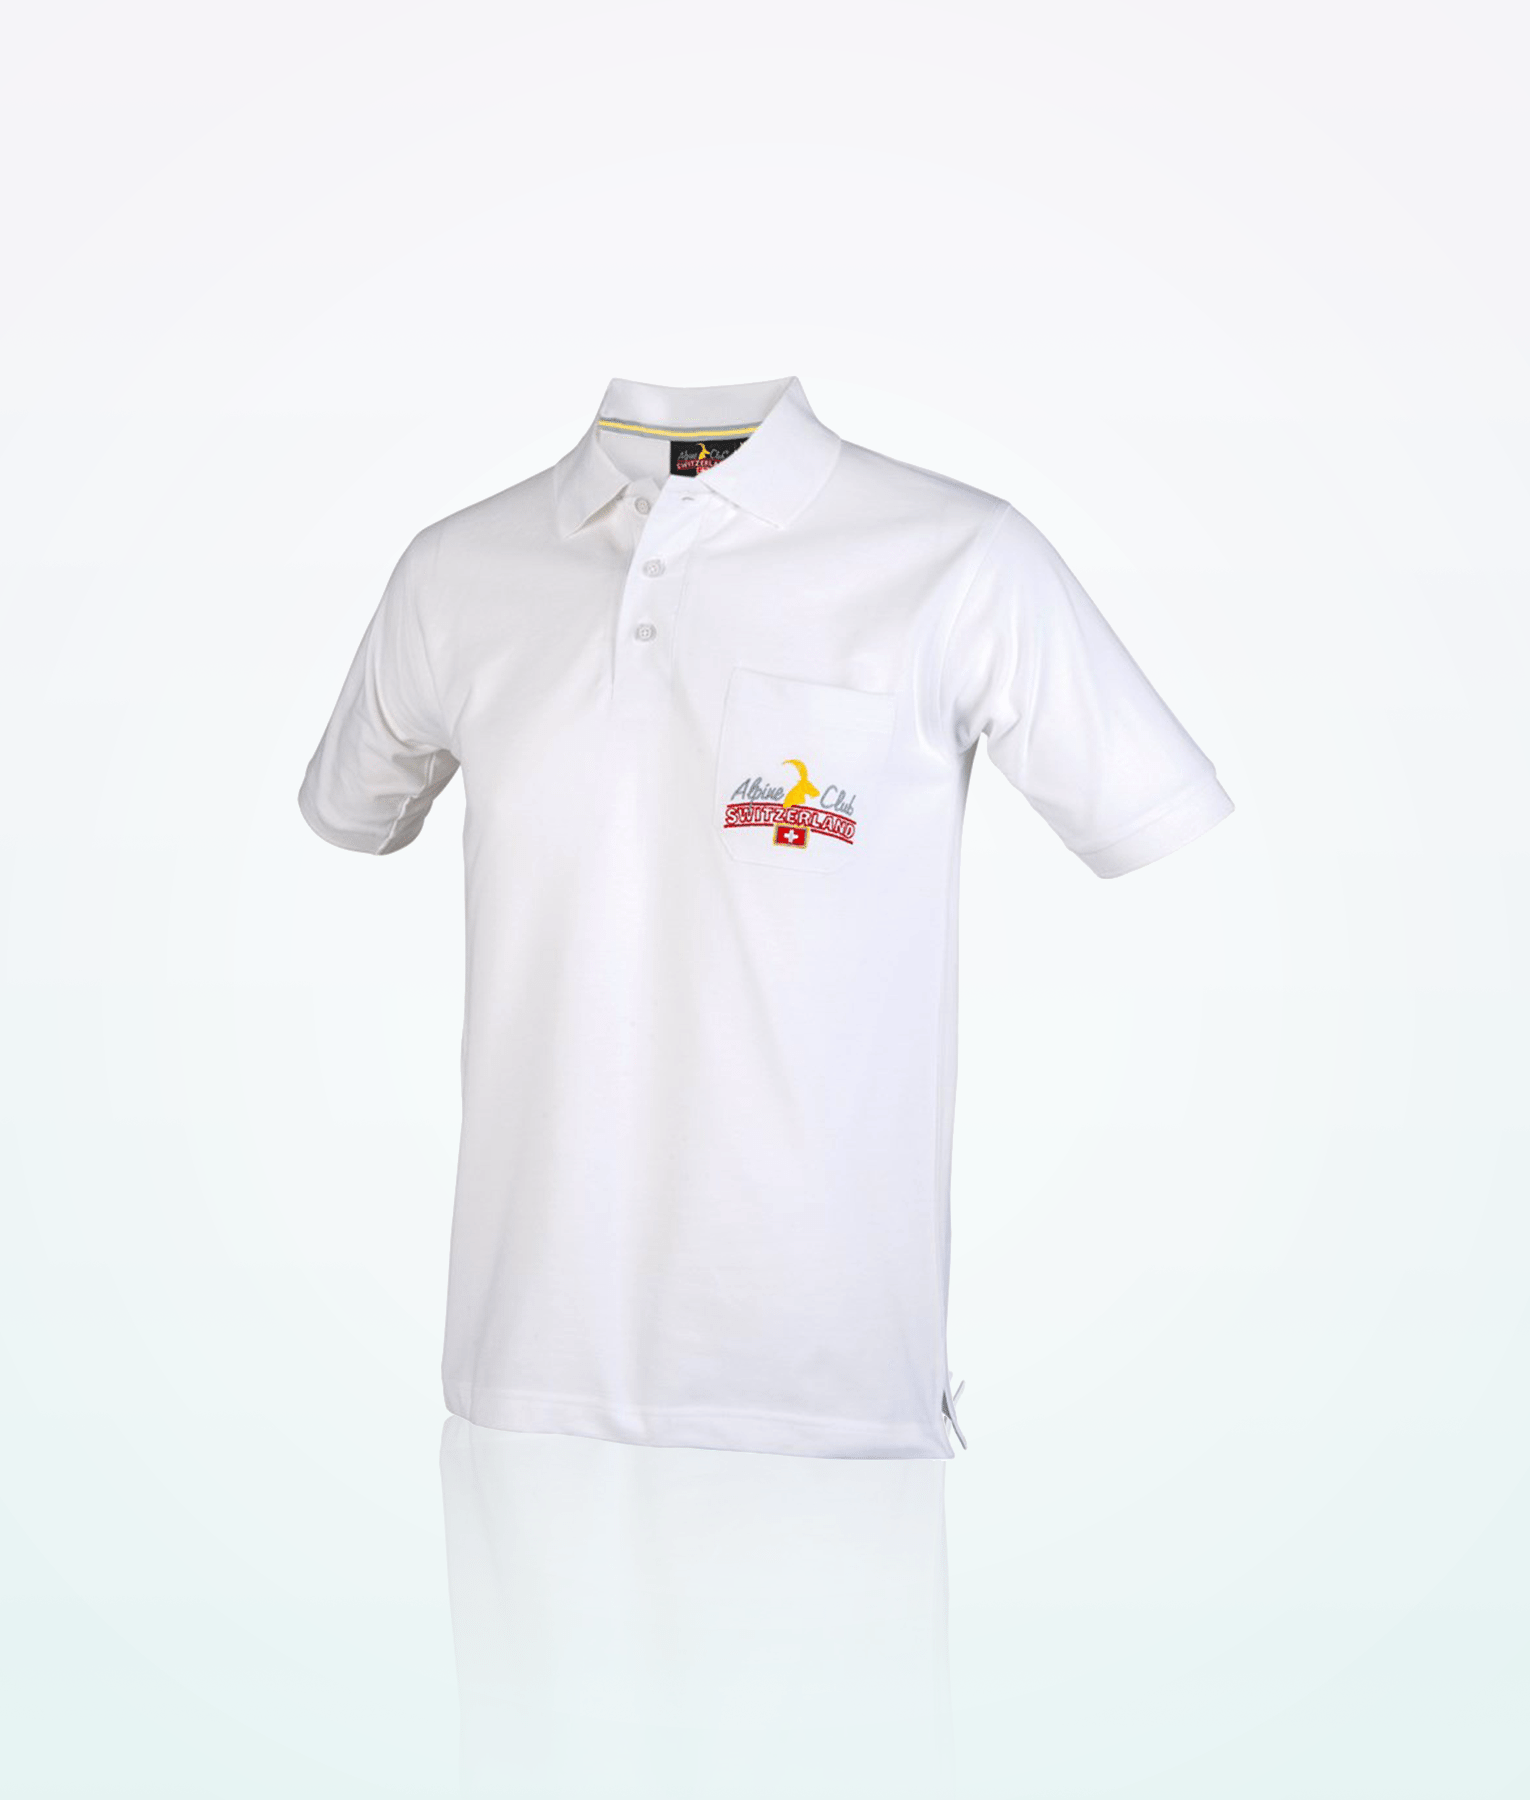 Polo shirt 100 cotton swiss made direct for Polo shirts with pockets 100 cotton